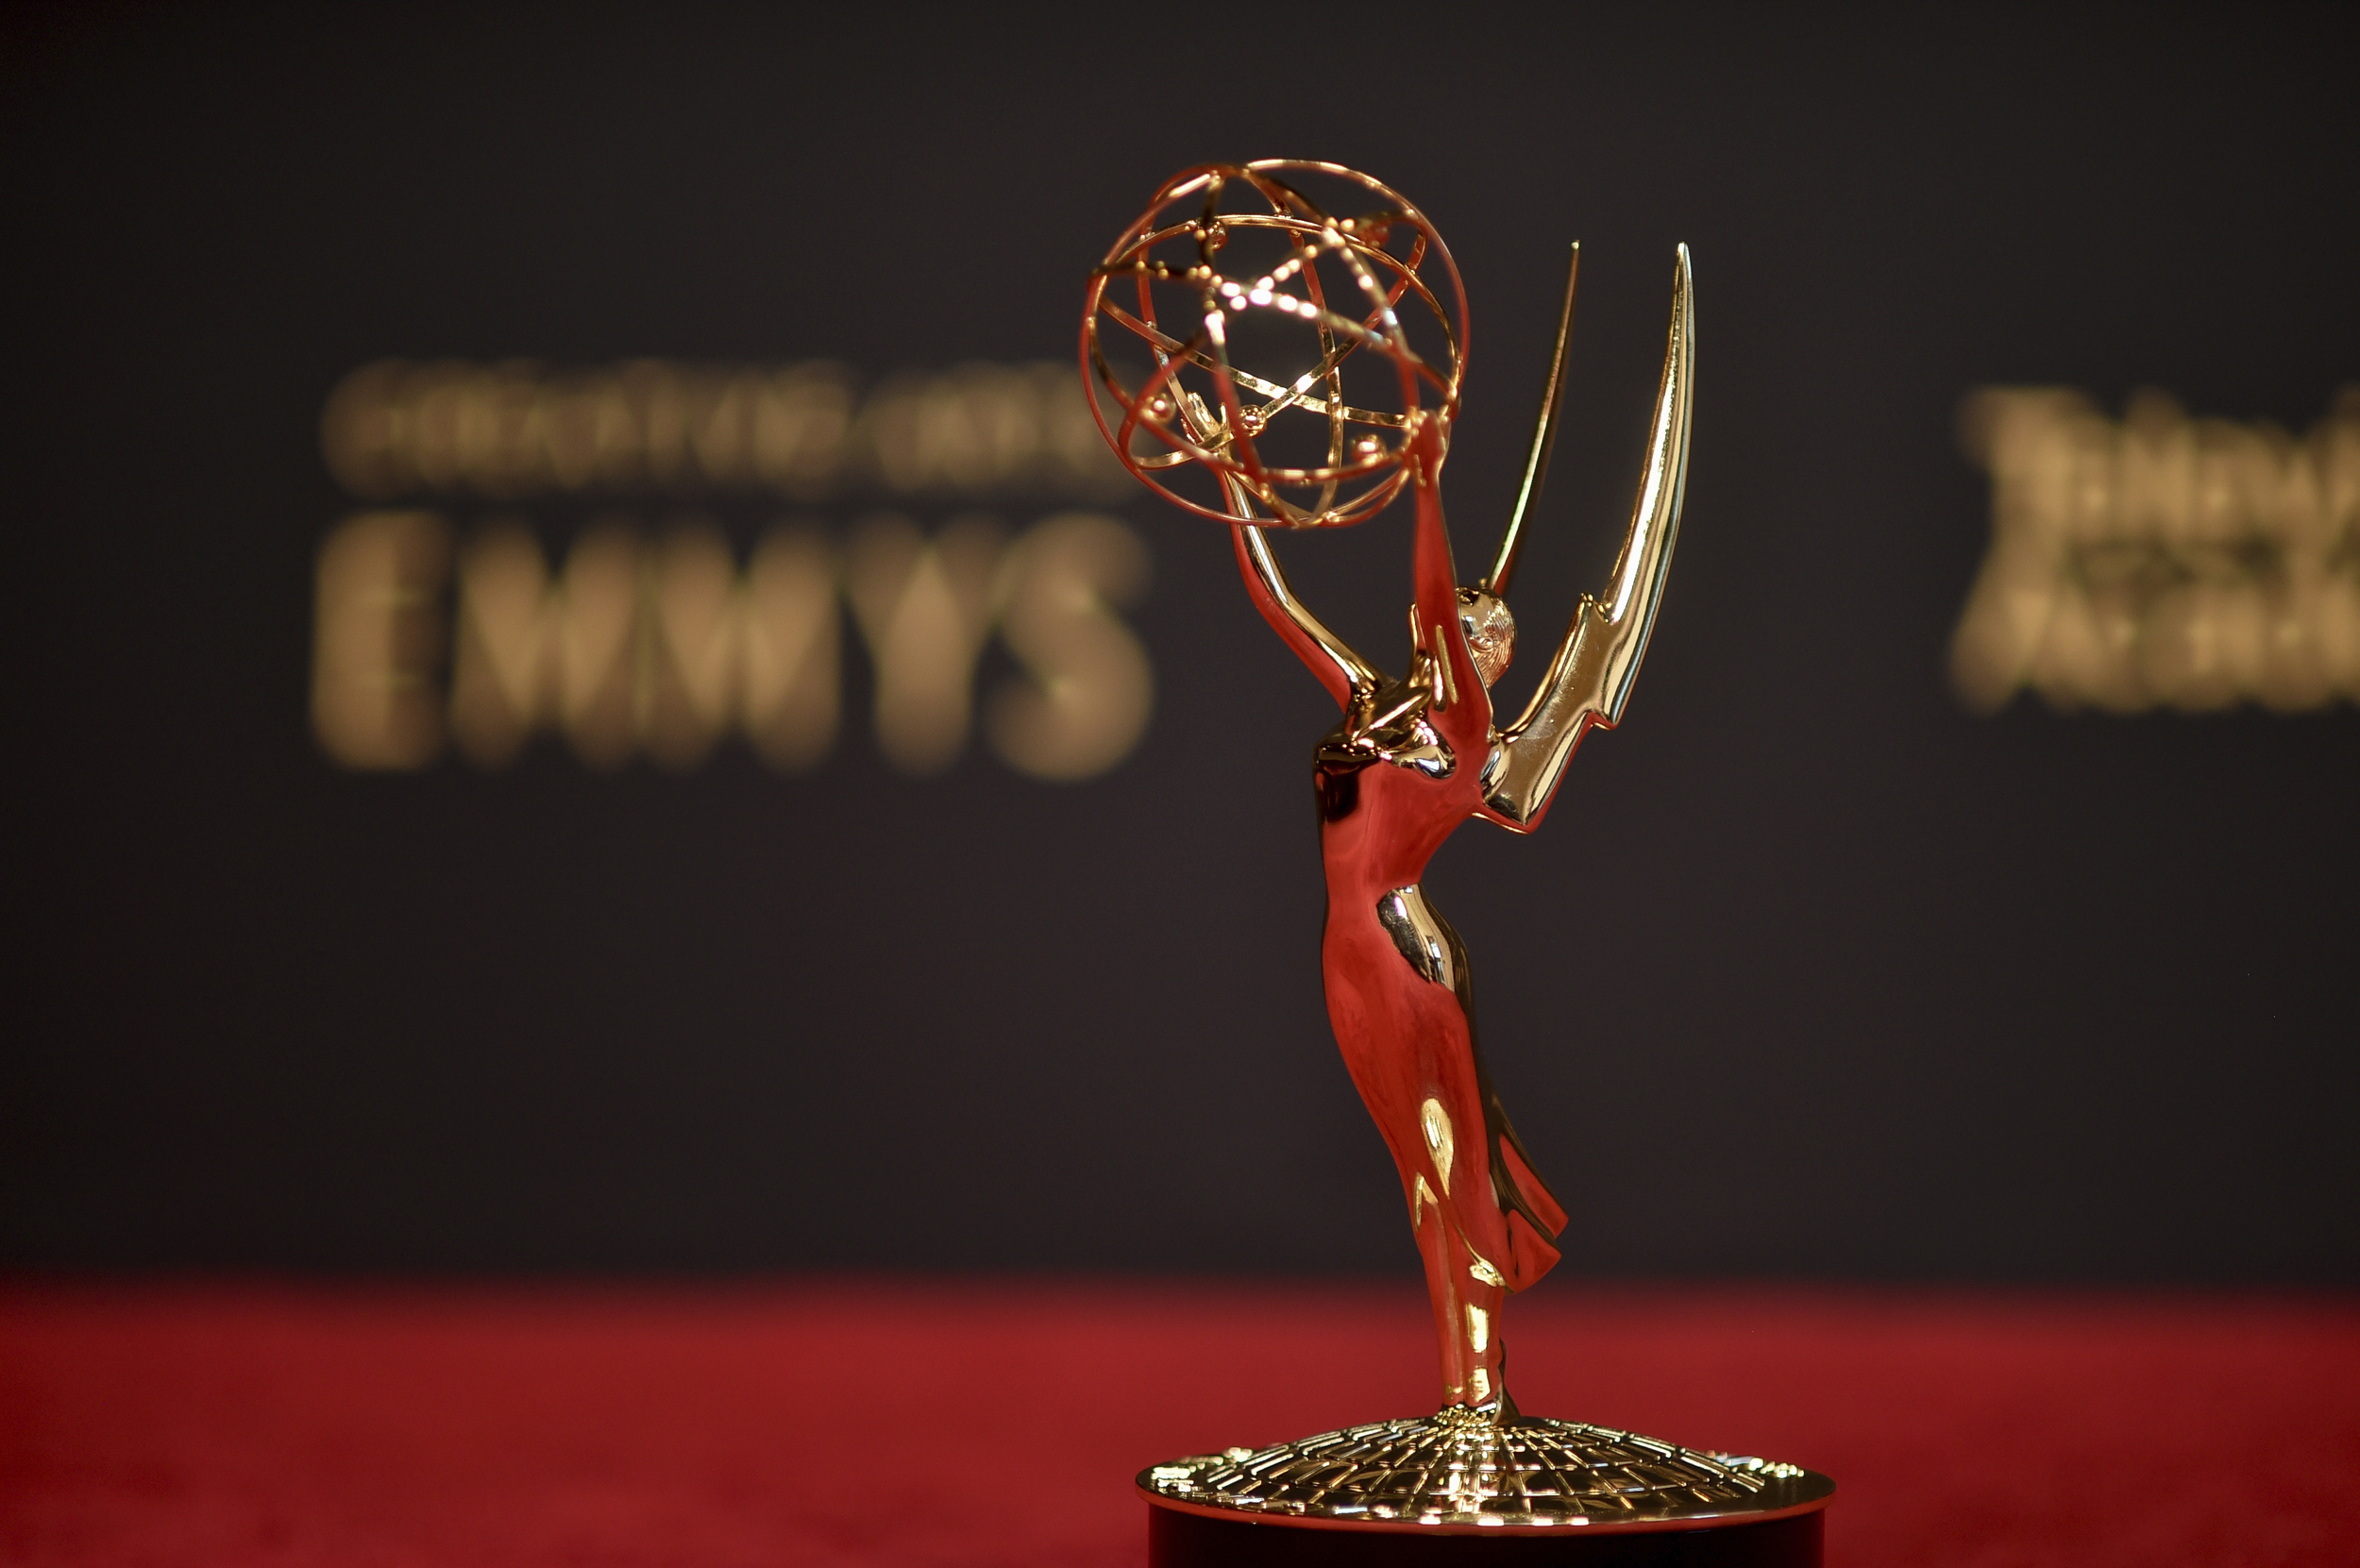 Emmy Statute from the Creative Emmy Awards, 2021.